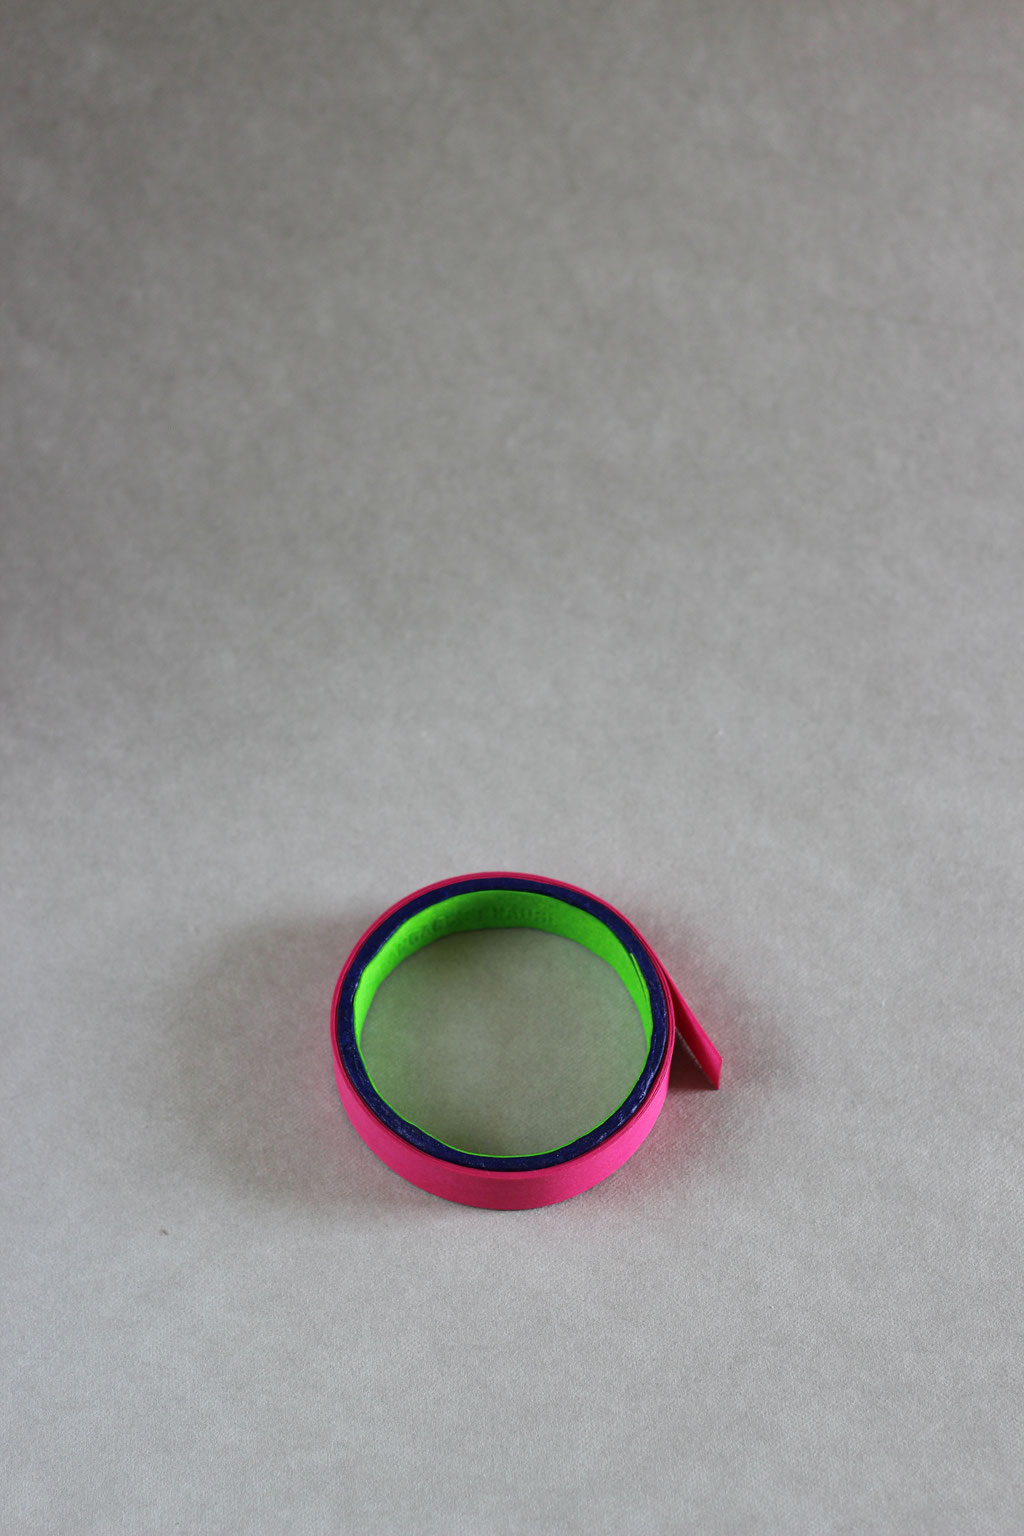 Rolle small pink/neon green